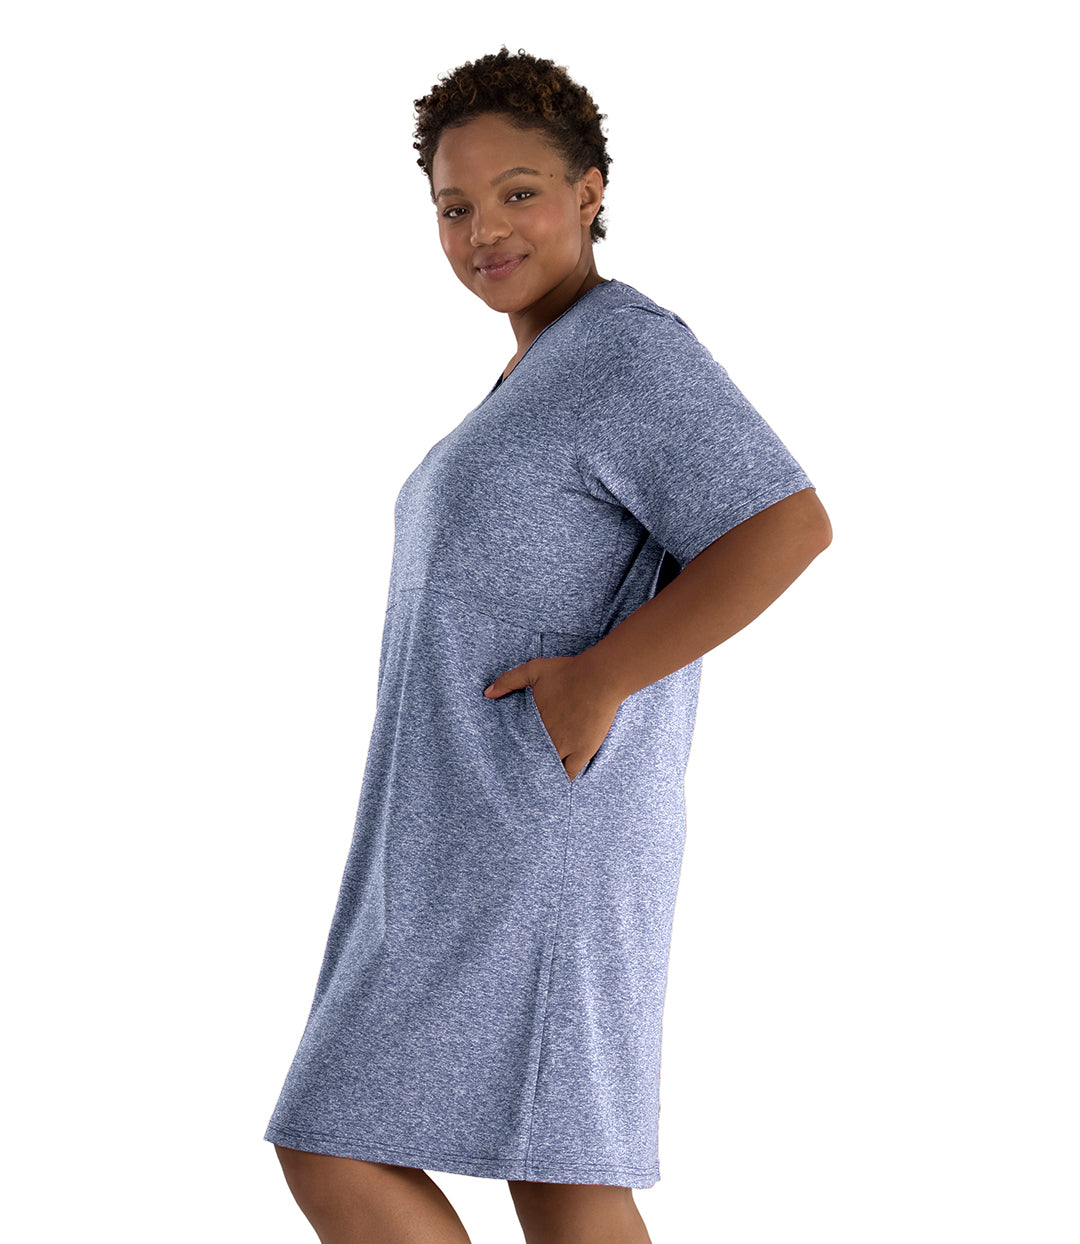 SoftWik® Short Sleeve Dress with Pockets-Tops Dress-Osheka, Inc-XL-Heather Navy-JunoActive